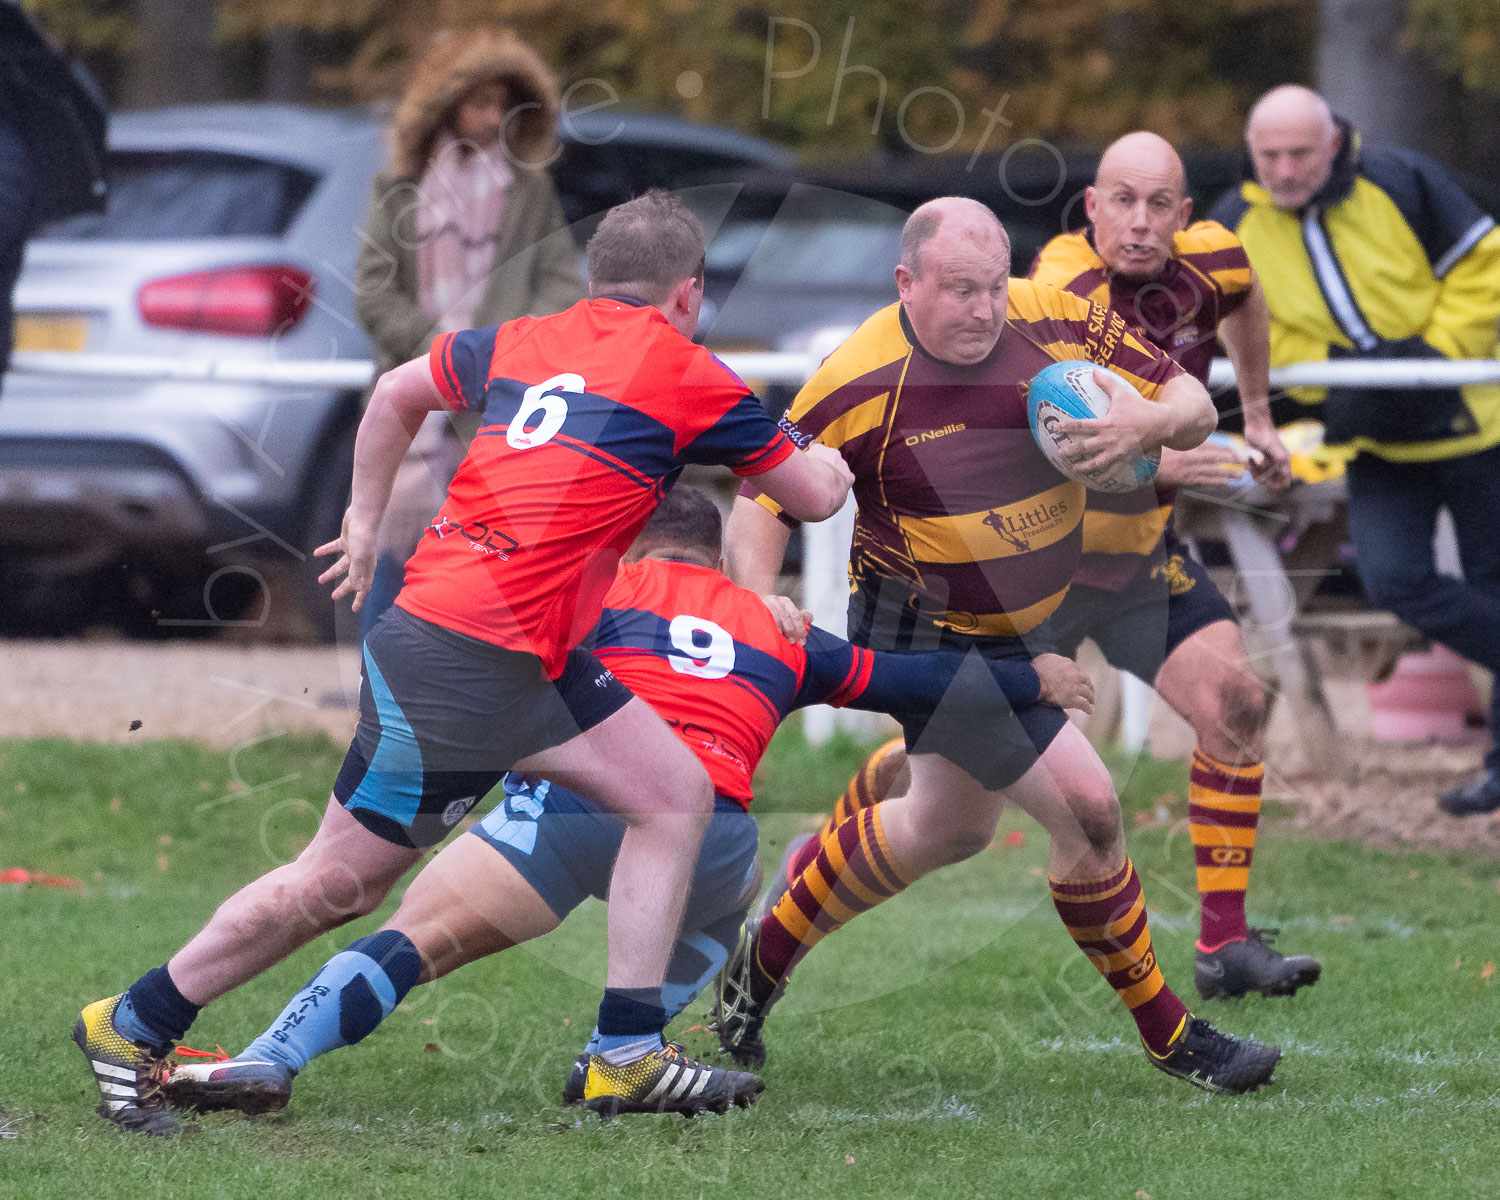 20181027 Amp Extras vs St Neots 2nd XV #2370